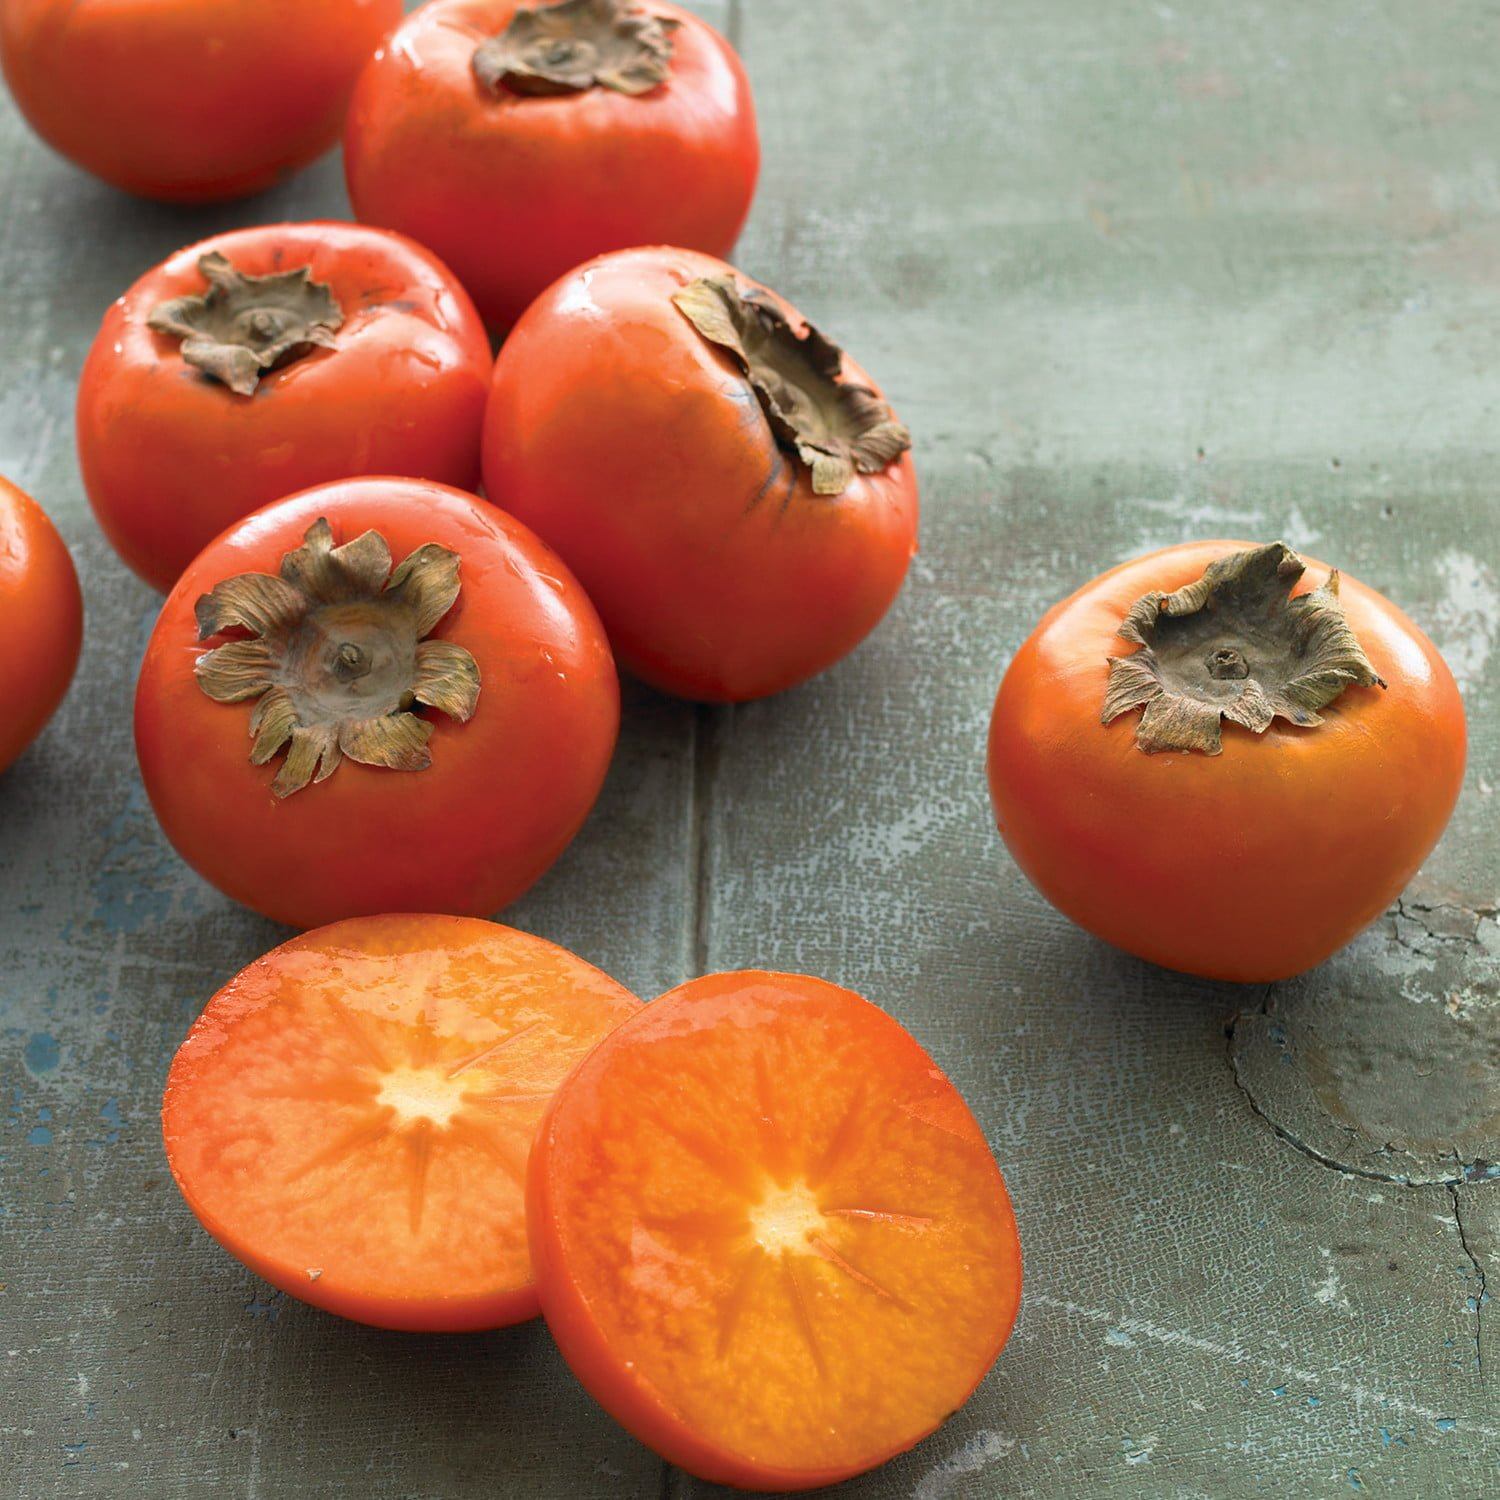 Persimmons have potassium in high amounts.